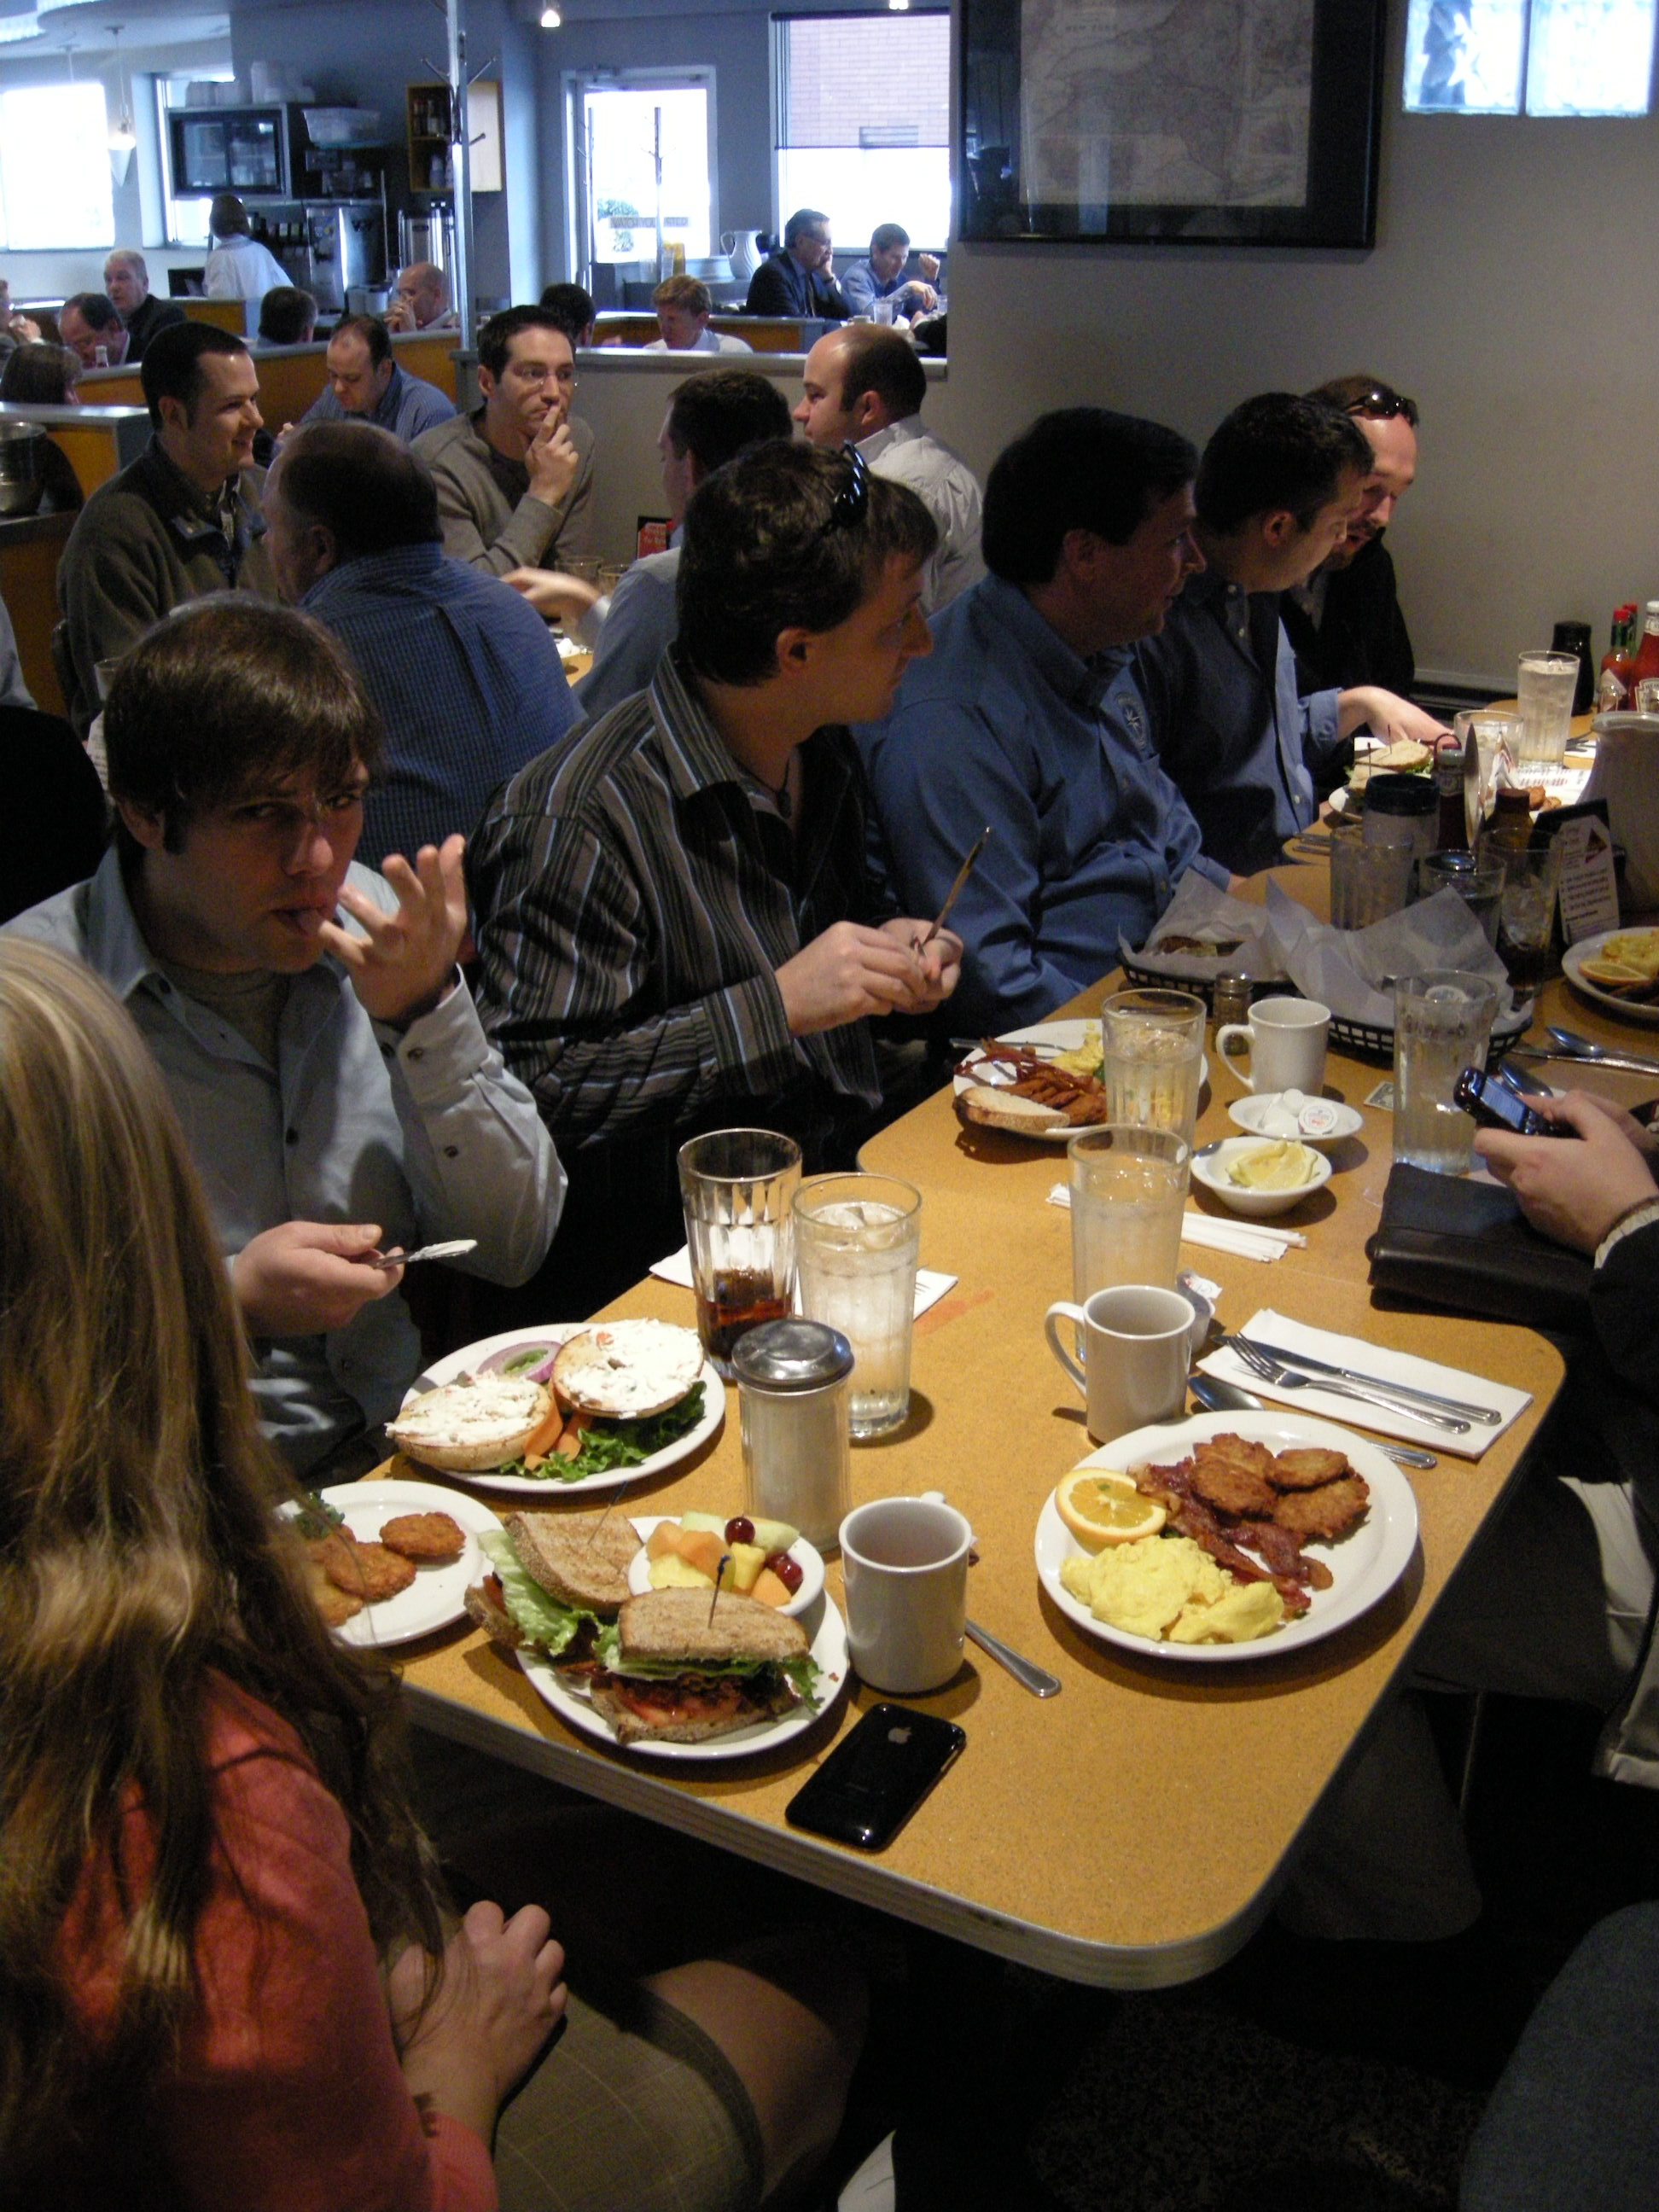 nashville-geek-breakfast---feb-2009_3311394221_o.jpg